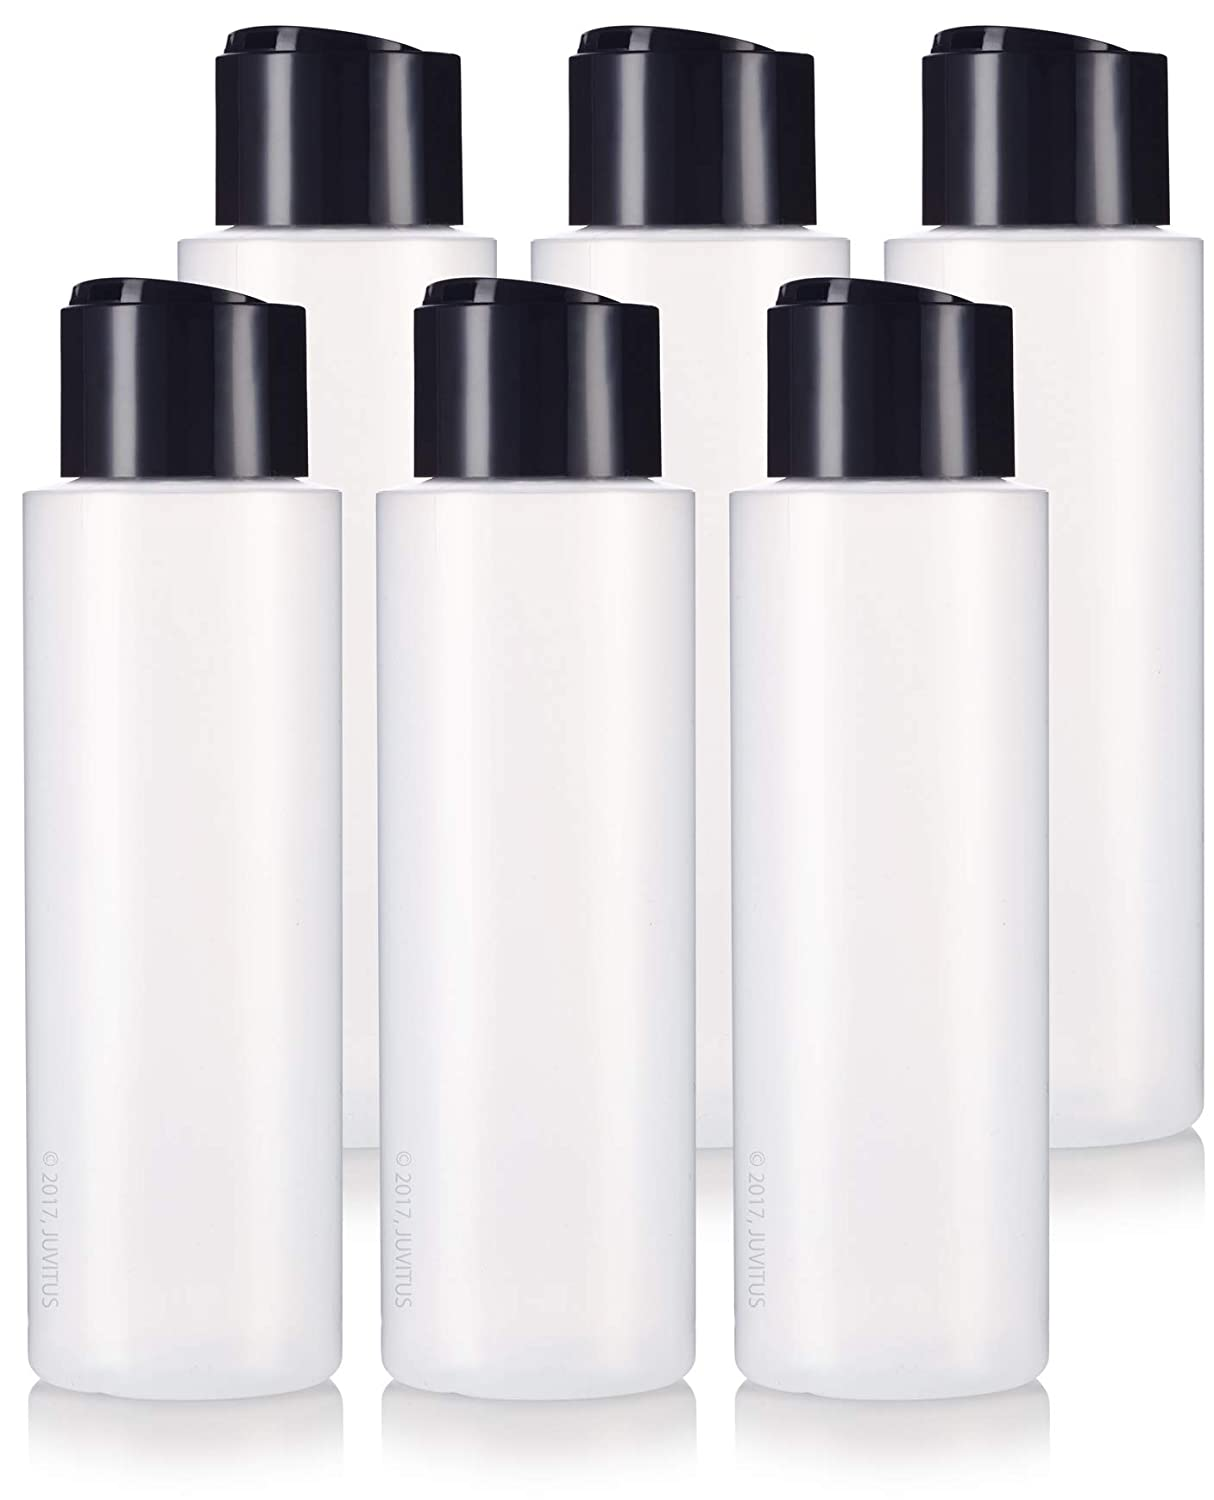 16 oz 500 ml Professional Natural Clear Refillable Plastic Squeeze BPA Free Bottle with Wide Black Disc Cap Lid 6 Pack for Shampoo, Conditioner, Body Wash, Lotion, and More